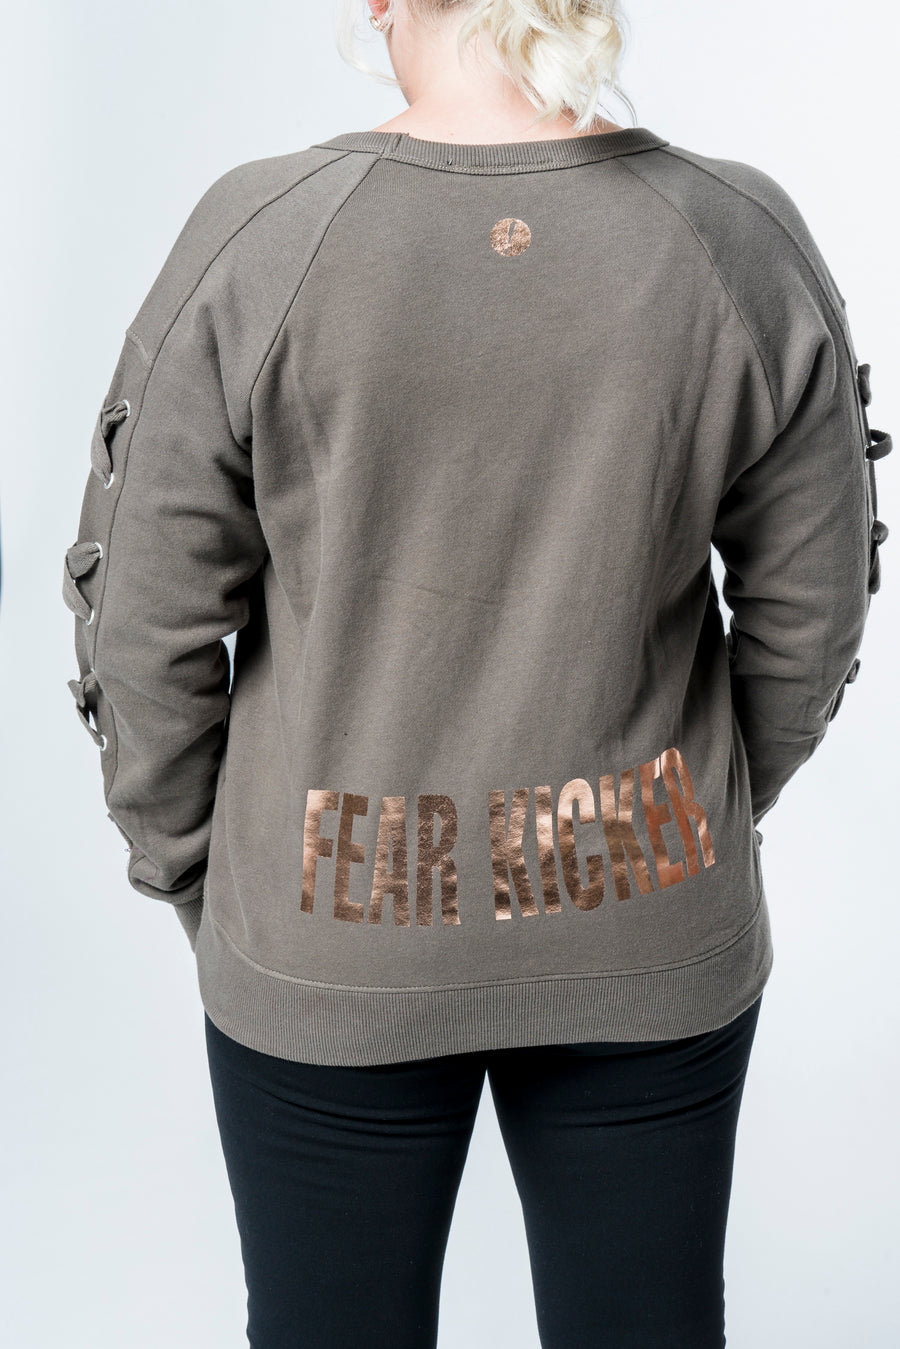 Fear Kicker Laced Sleeve Sweatshirt